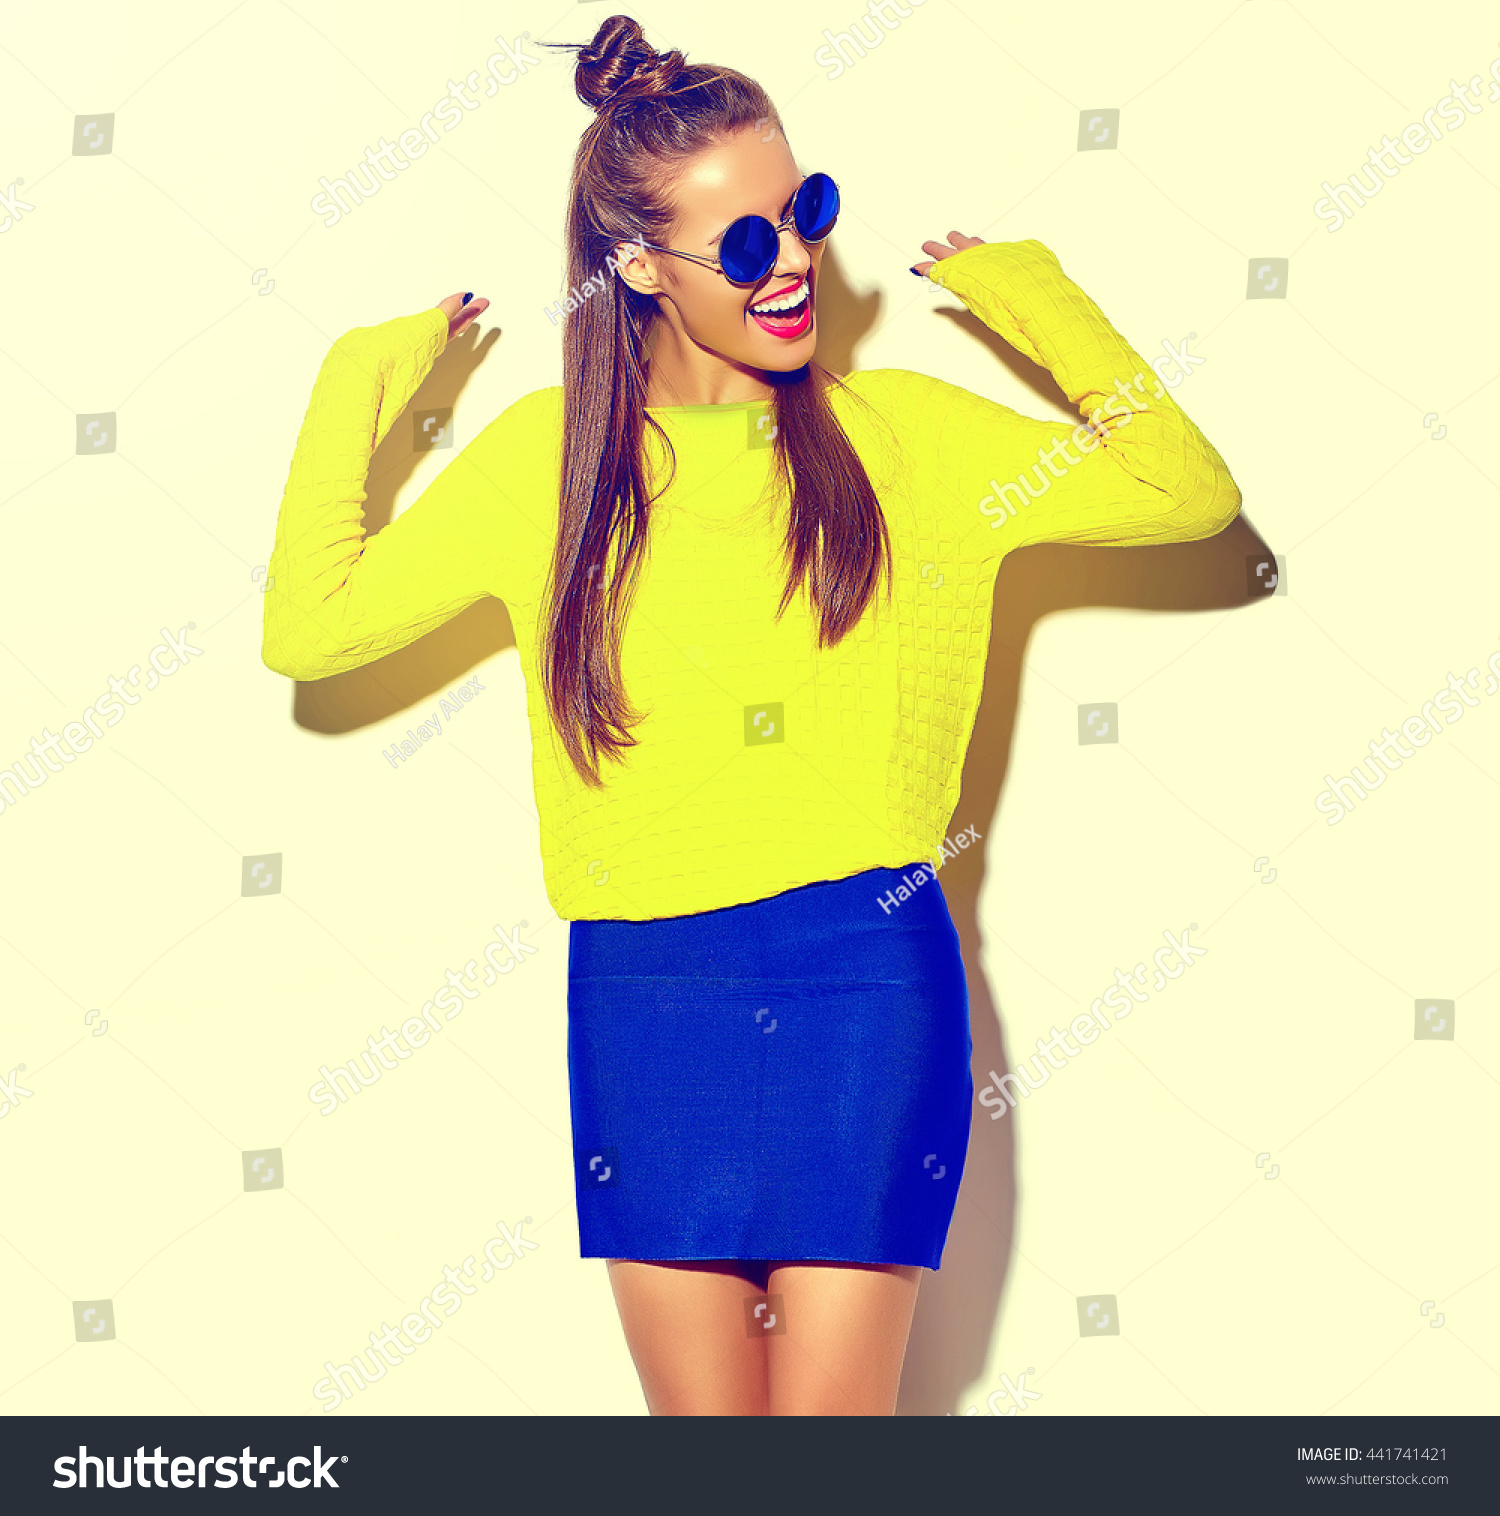 Portrait Cheerful Fashion Hipster Girl Going Stock Photo ...